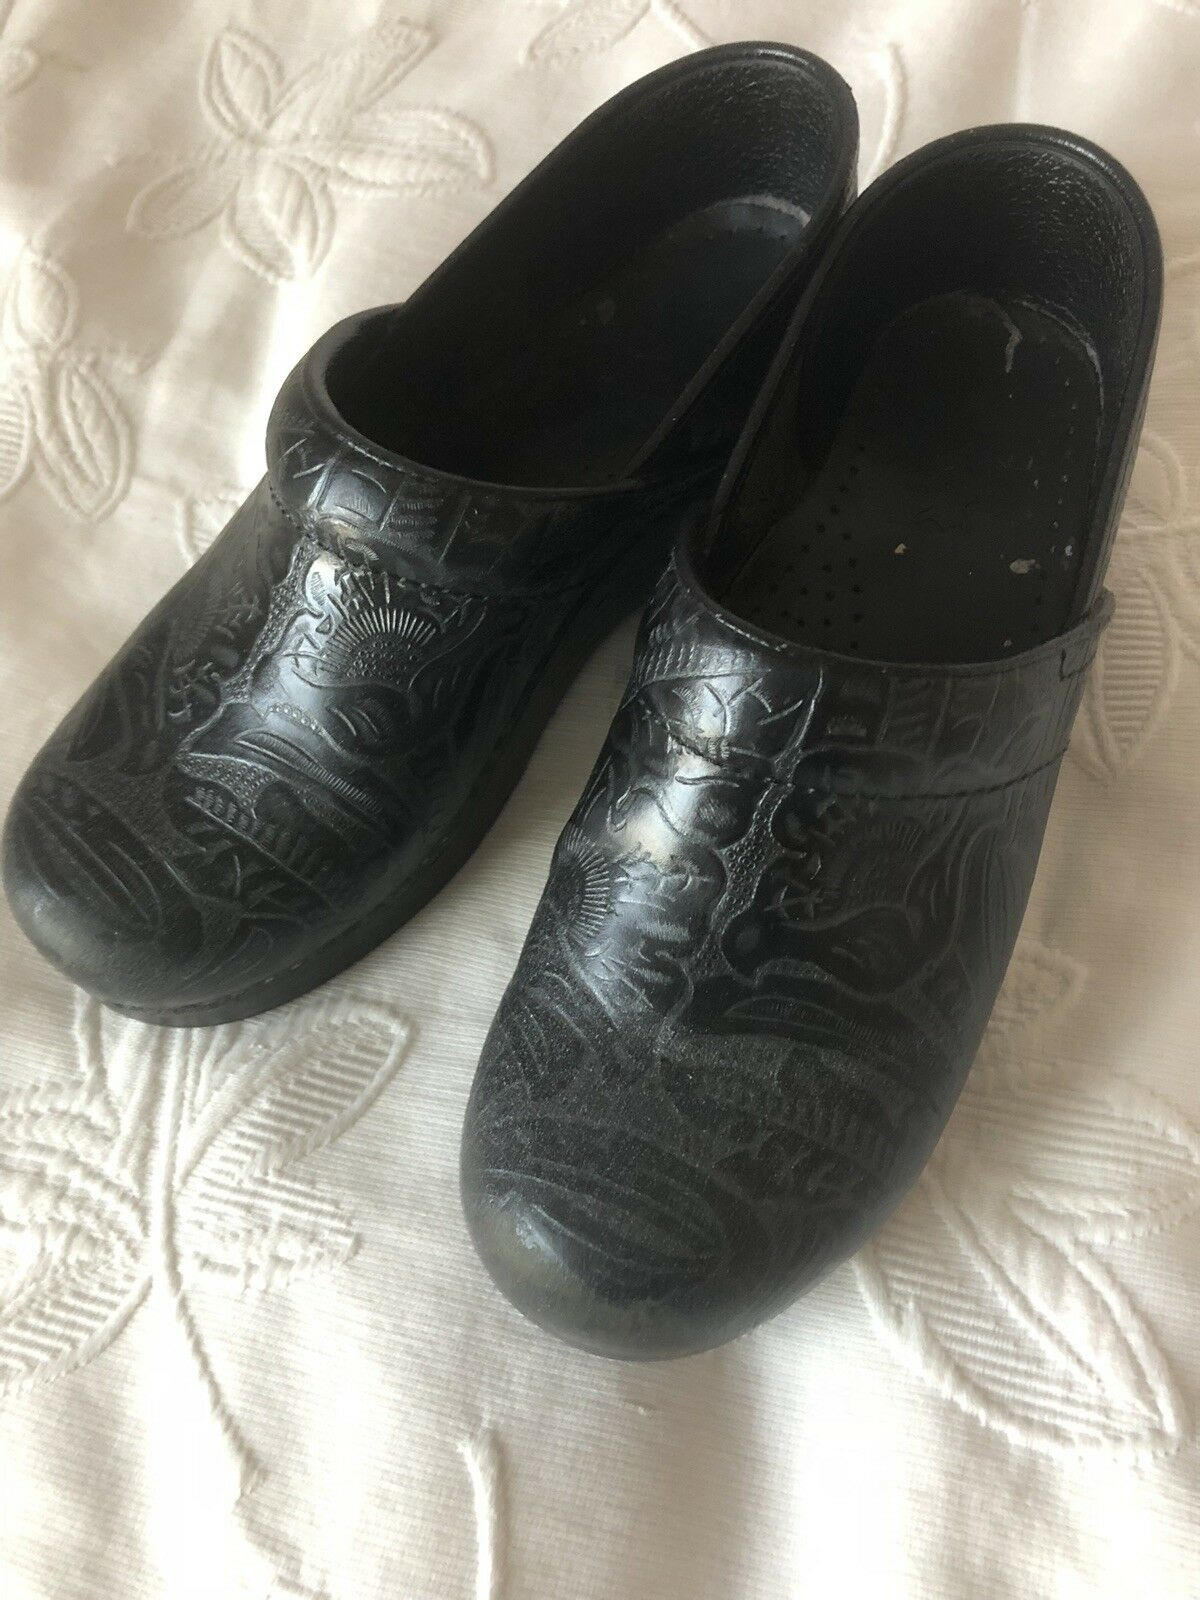 Dansko Women's Professional Clogs shoes Comfort Black Floral Tooled Tooled Tooled Sz 39 stain d7f2d5